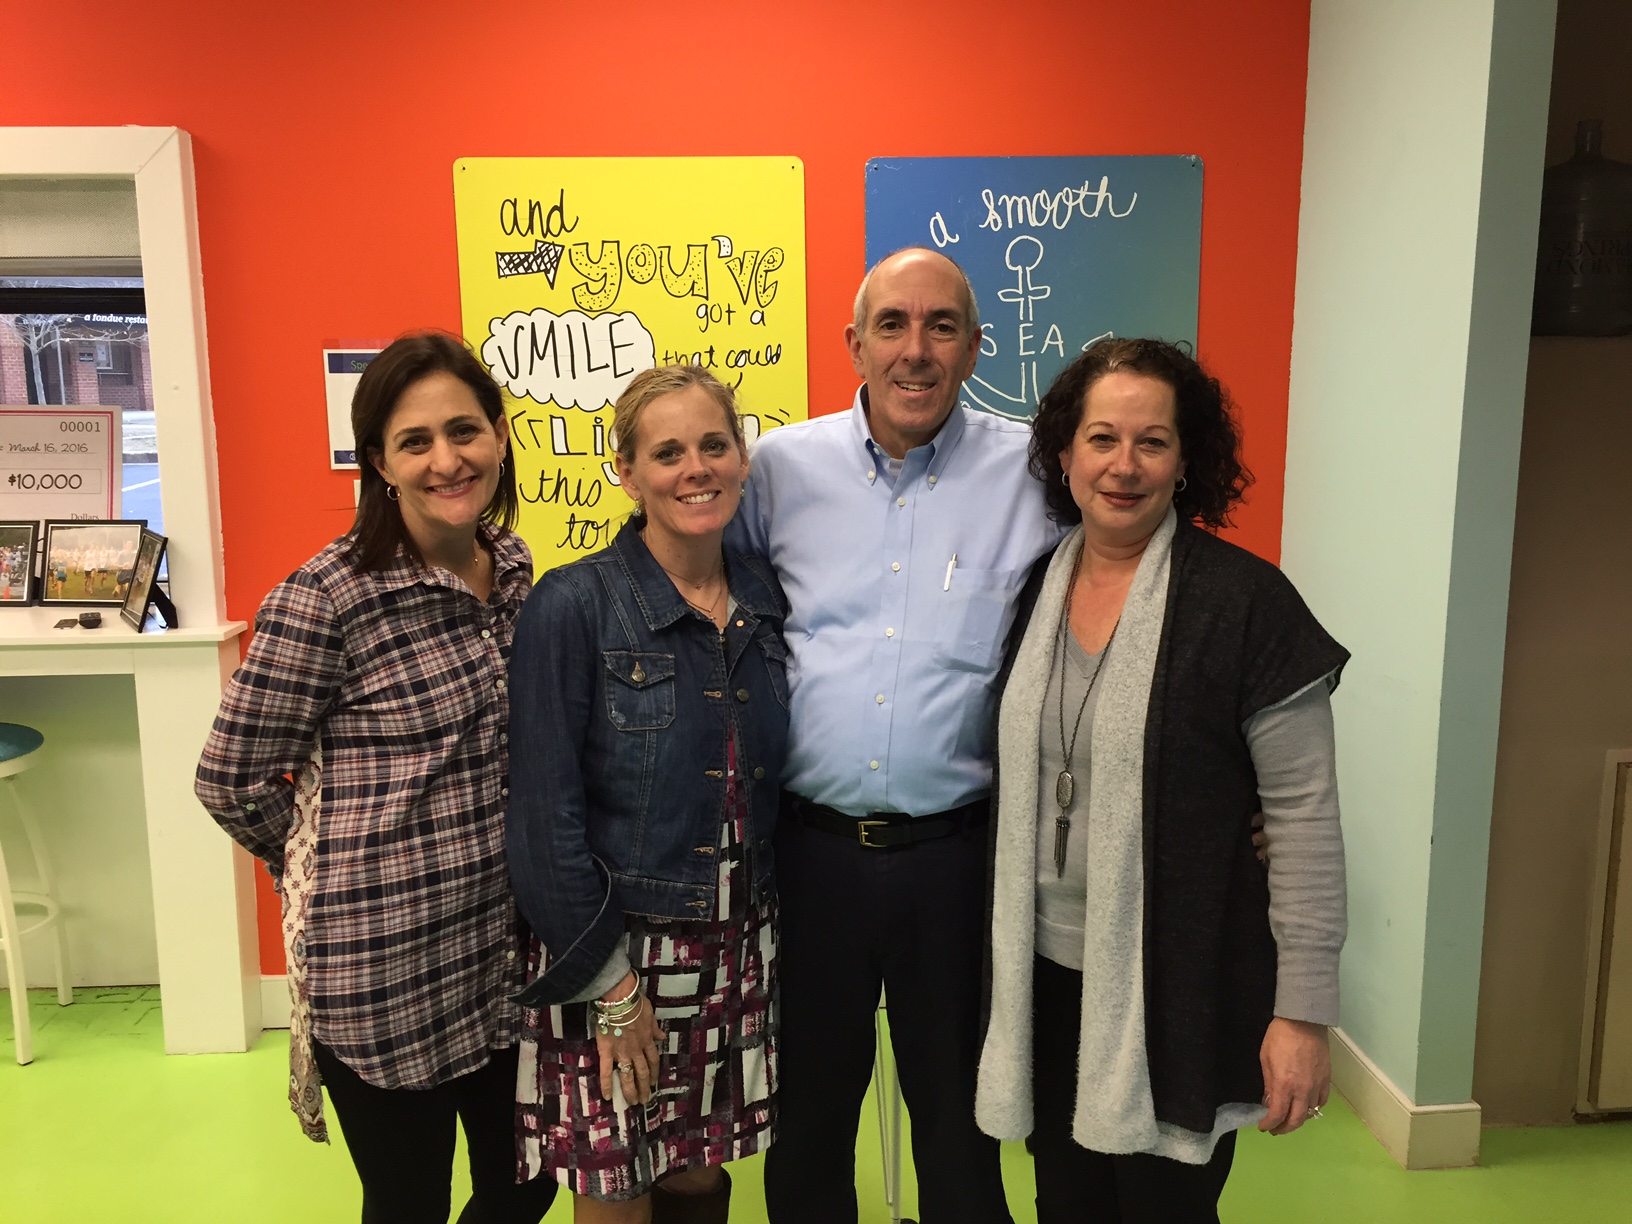 Albert Negrin pictured with (from left) Samantha Mier, Grace Gallagher, & Nannette Shor